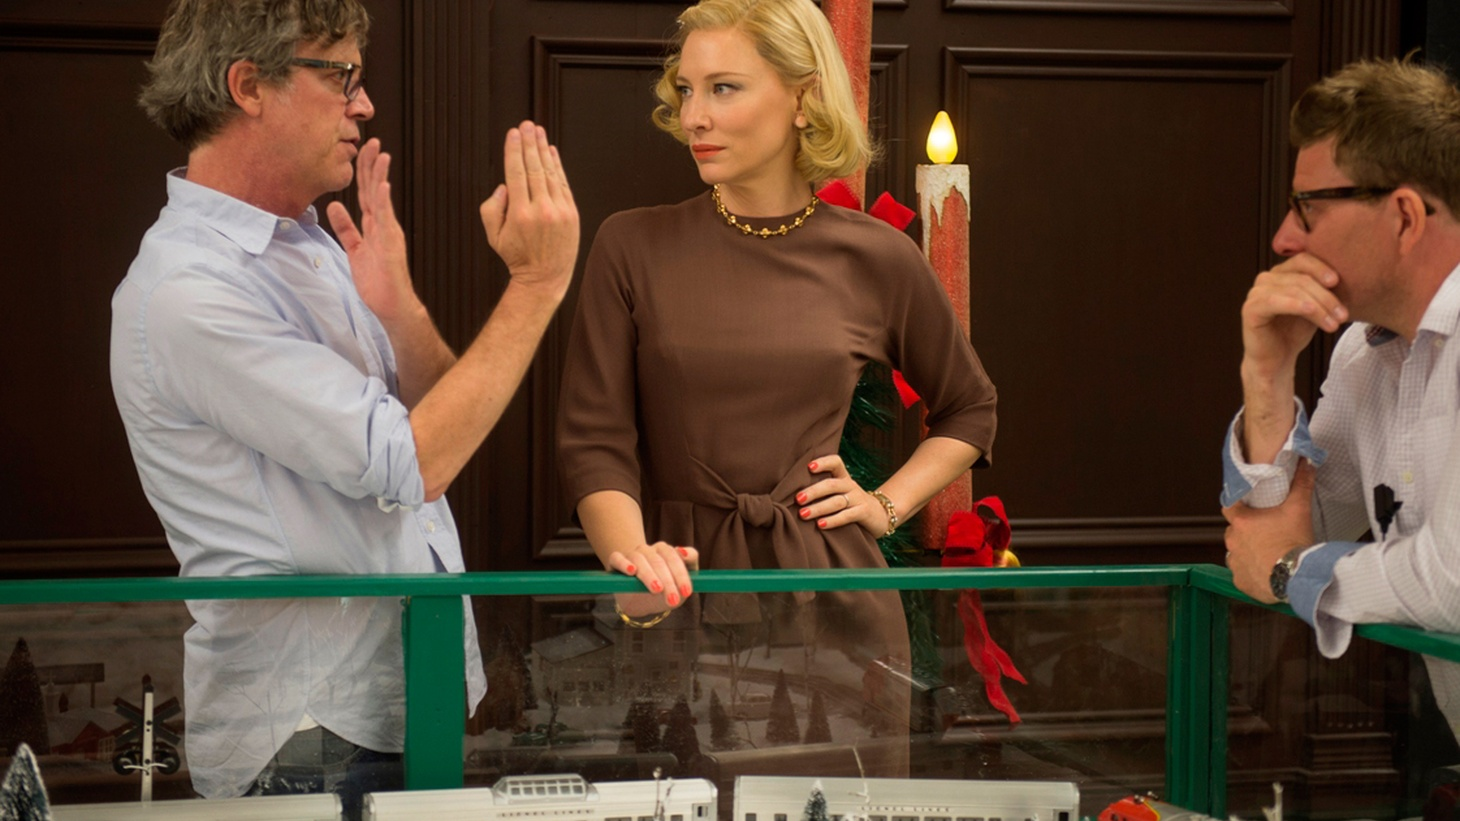 Director Todd Haynes and producer Christine Vachon trace tell us about the long journey to make their newest movie, Carol. Despite their past success, they say they still face resistance in the industry whenever they pitch a movie about women without any male leads.